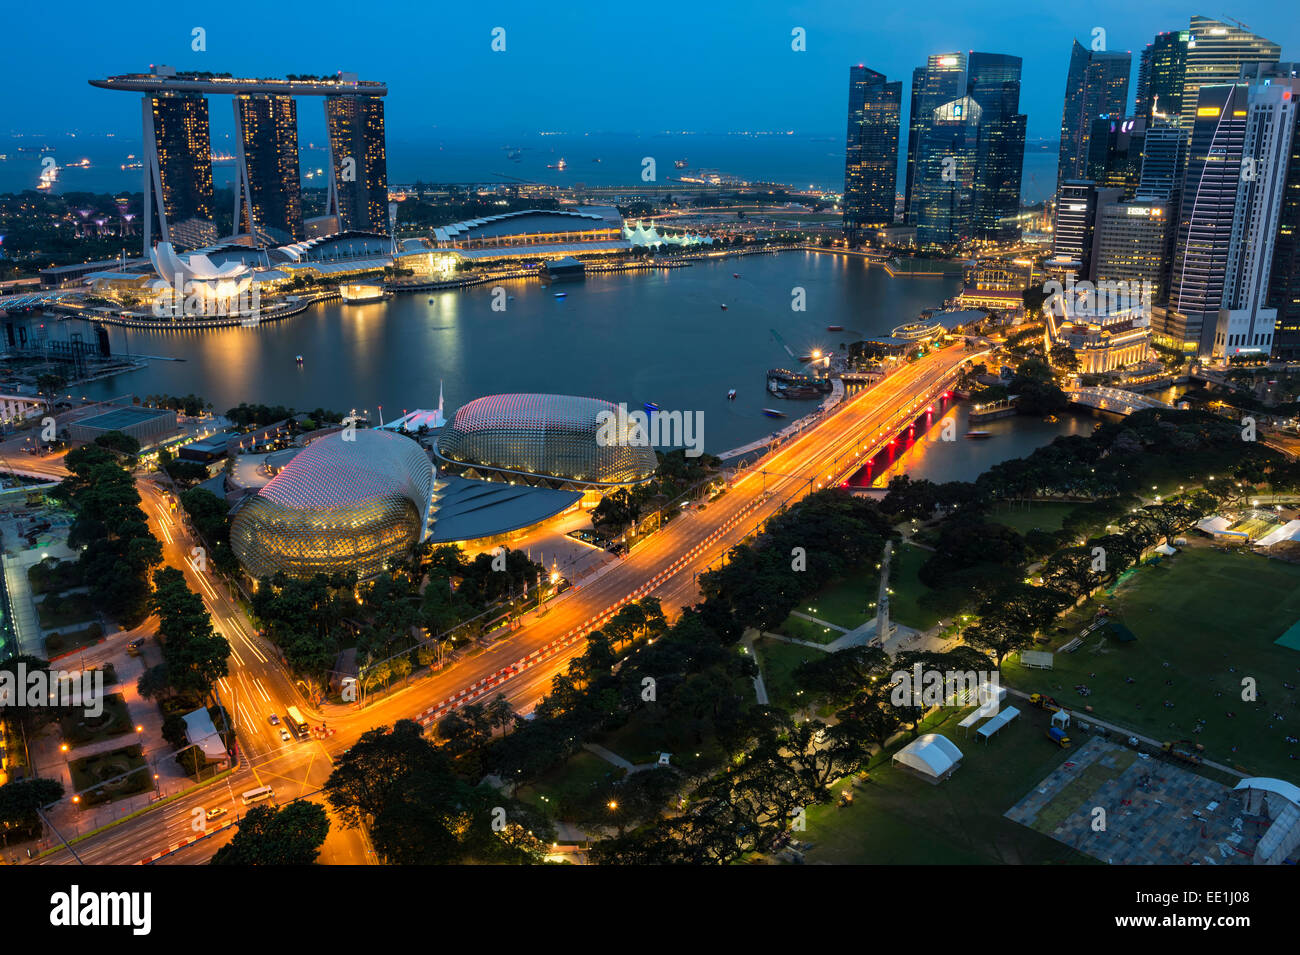 Marina Bay at night, Singapore, Southeast Asia, Asia - Stock Image